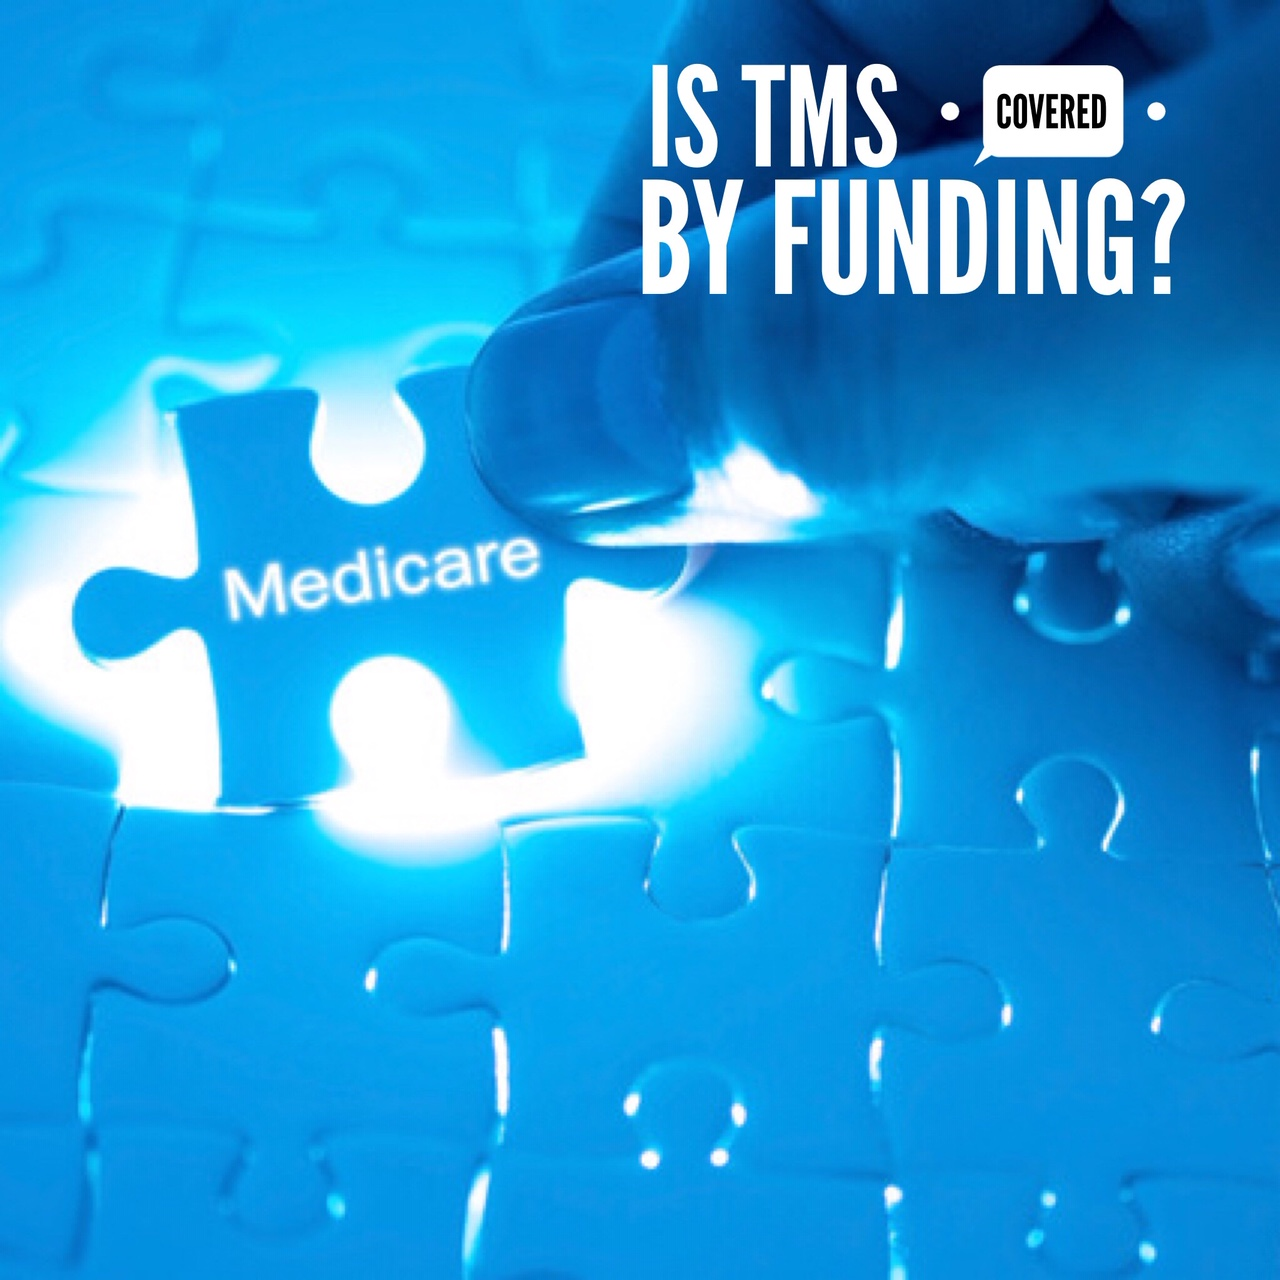 TMS health care funding